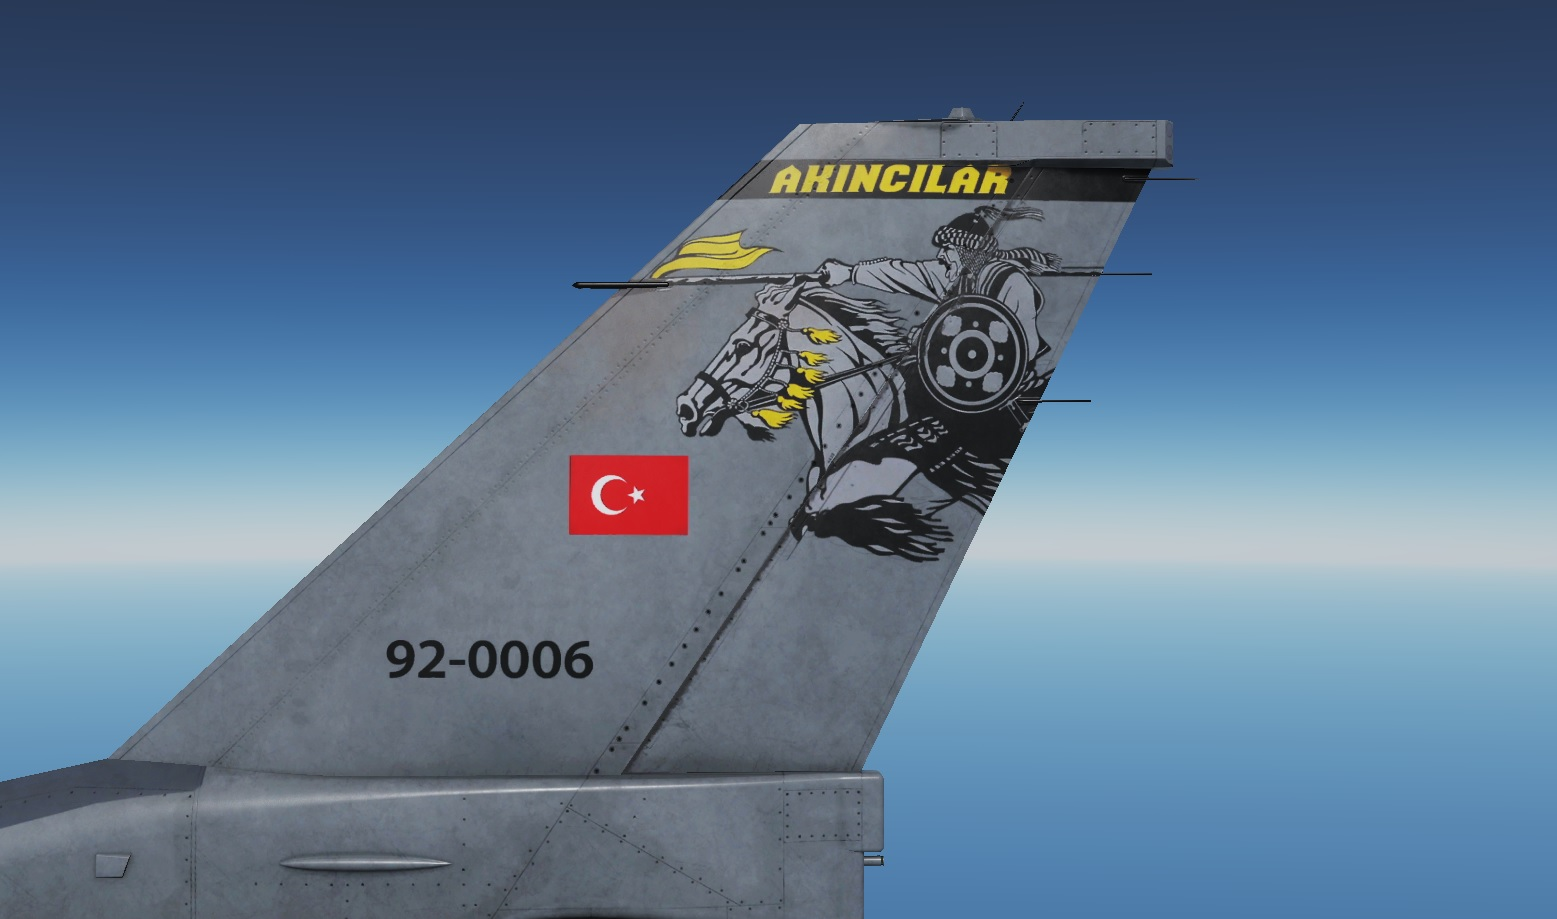 Turkish Air Force - Akıncılar 152.Filo - Livery - V 1.8 - by AngrybirdTR